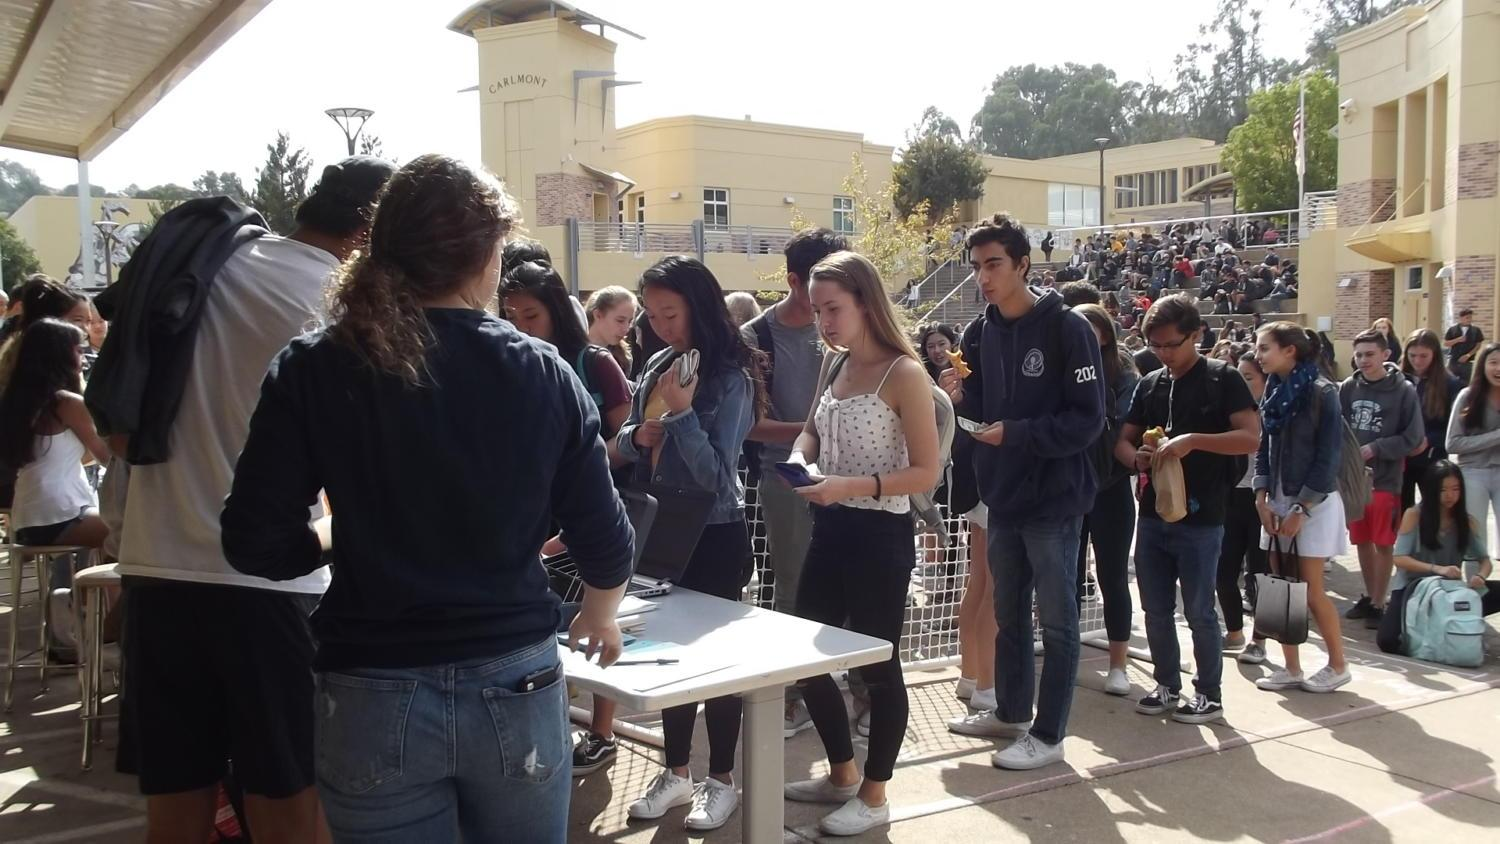 Carlmont students line up in the quad during the one-day homecoming ticket sale to buy their discounted tickets on Oct. 16. Tickets were sold for $5 cheaper than the normal prices on Oct. 17 to Oct. 27.